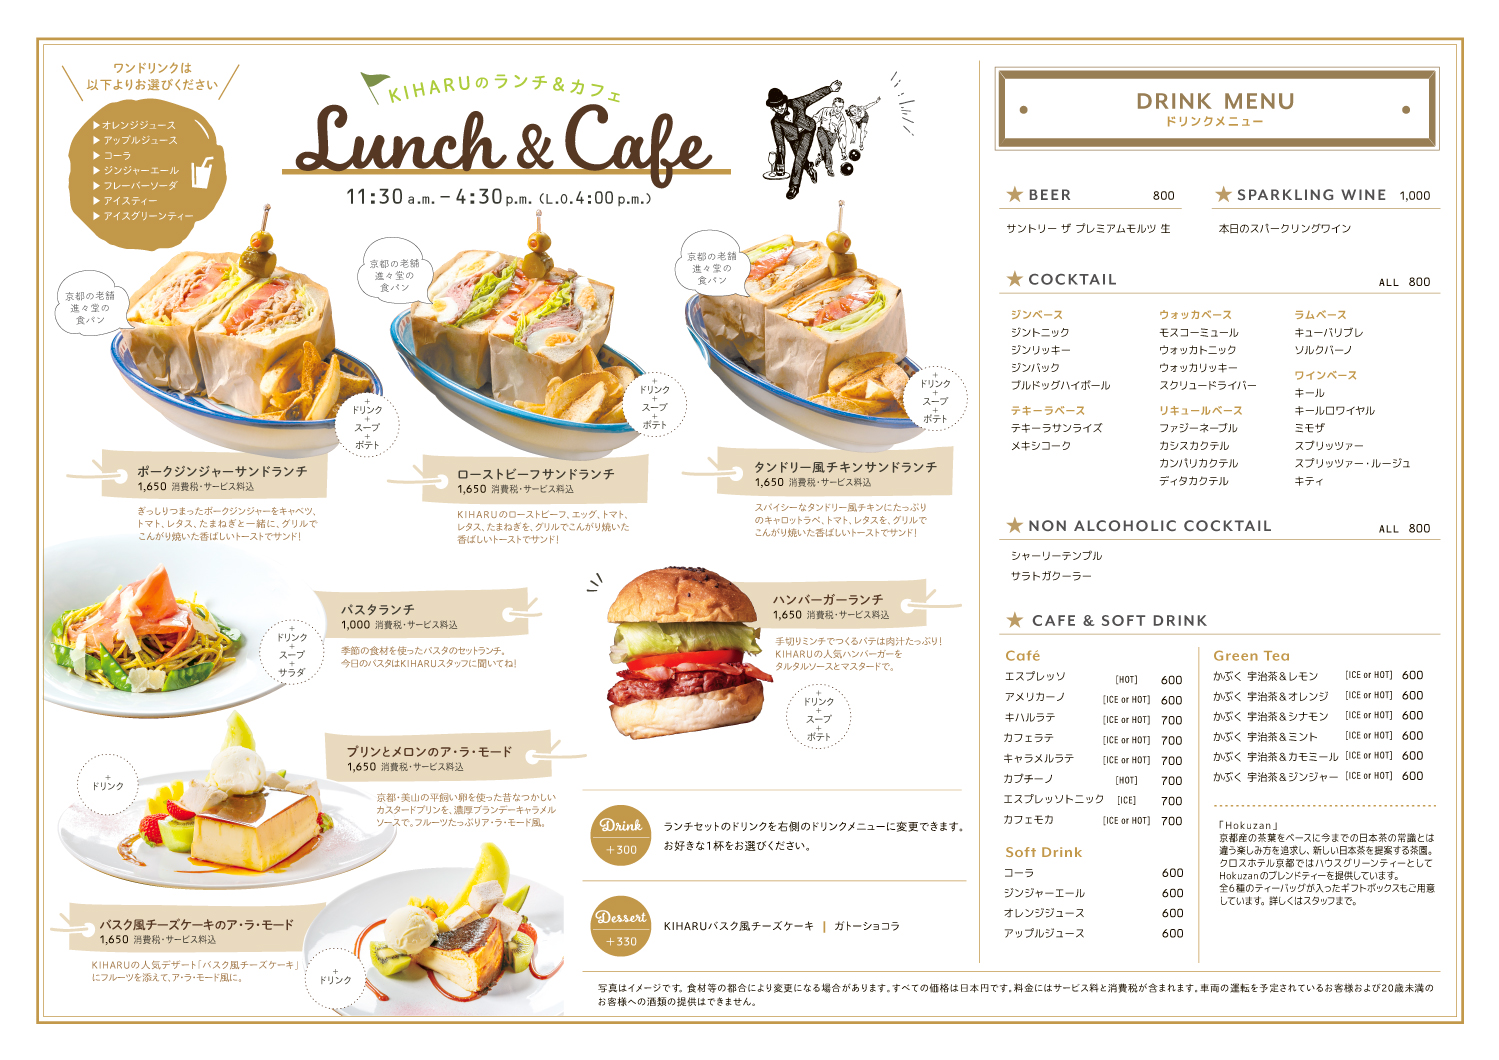 KIHARU Lunch & Cafe Menu